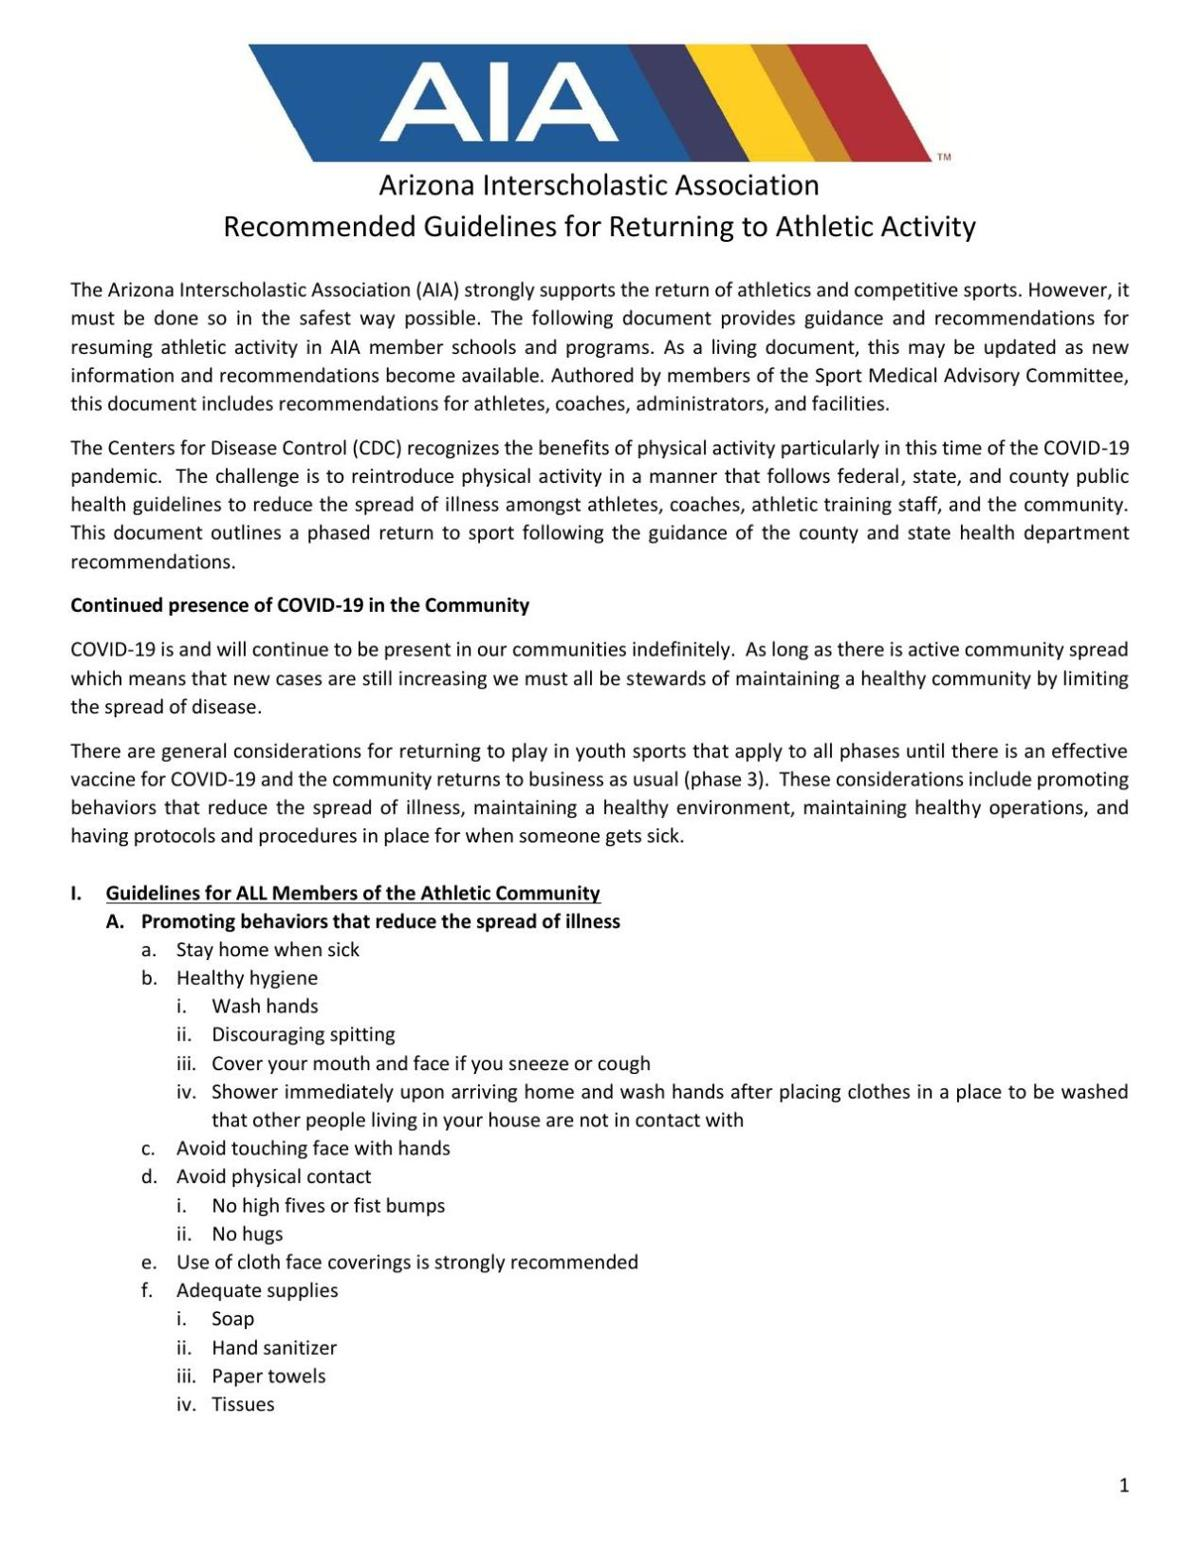 AIA guidelines for returning to activity